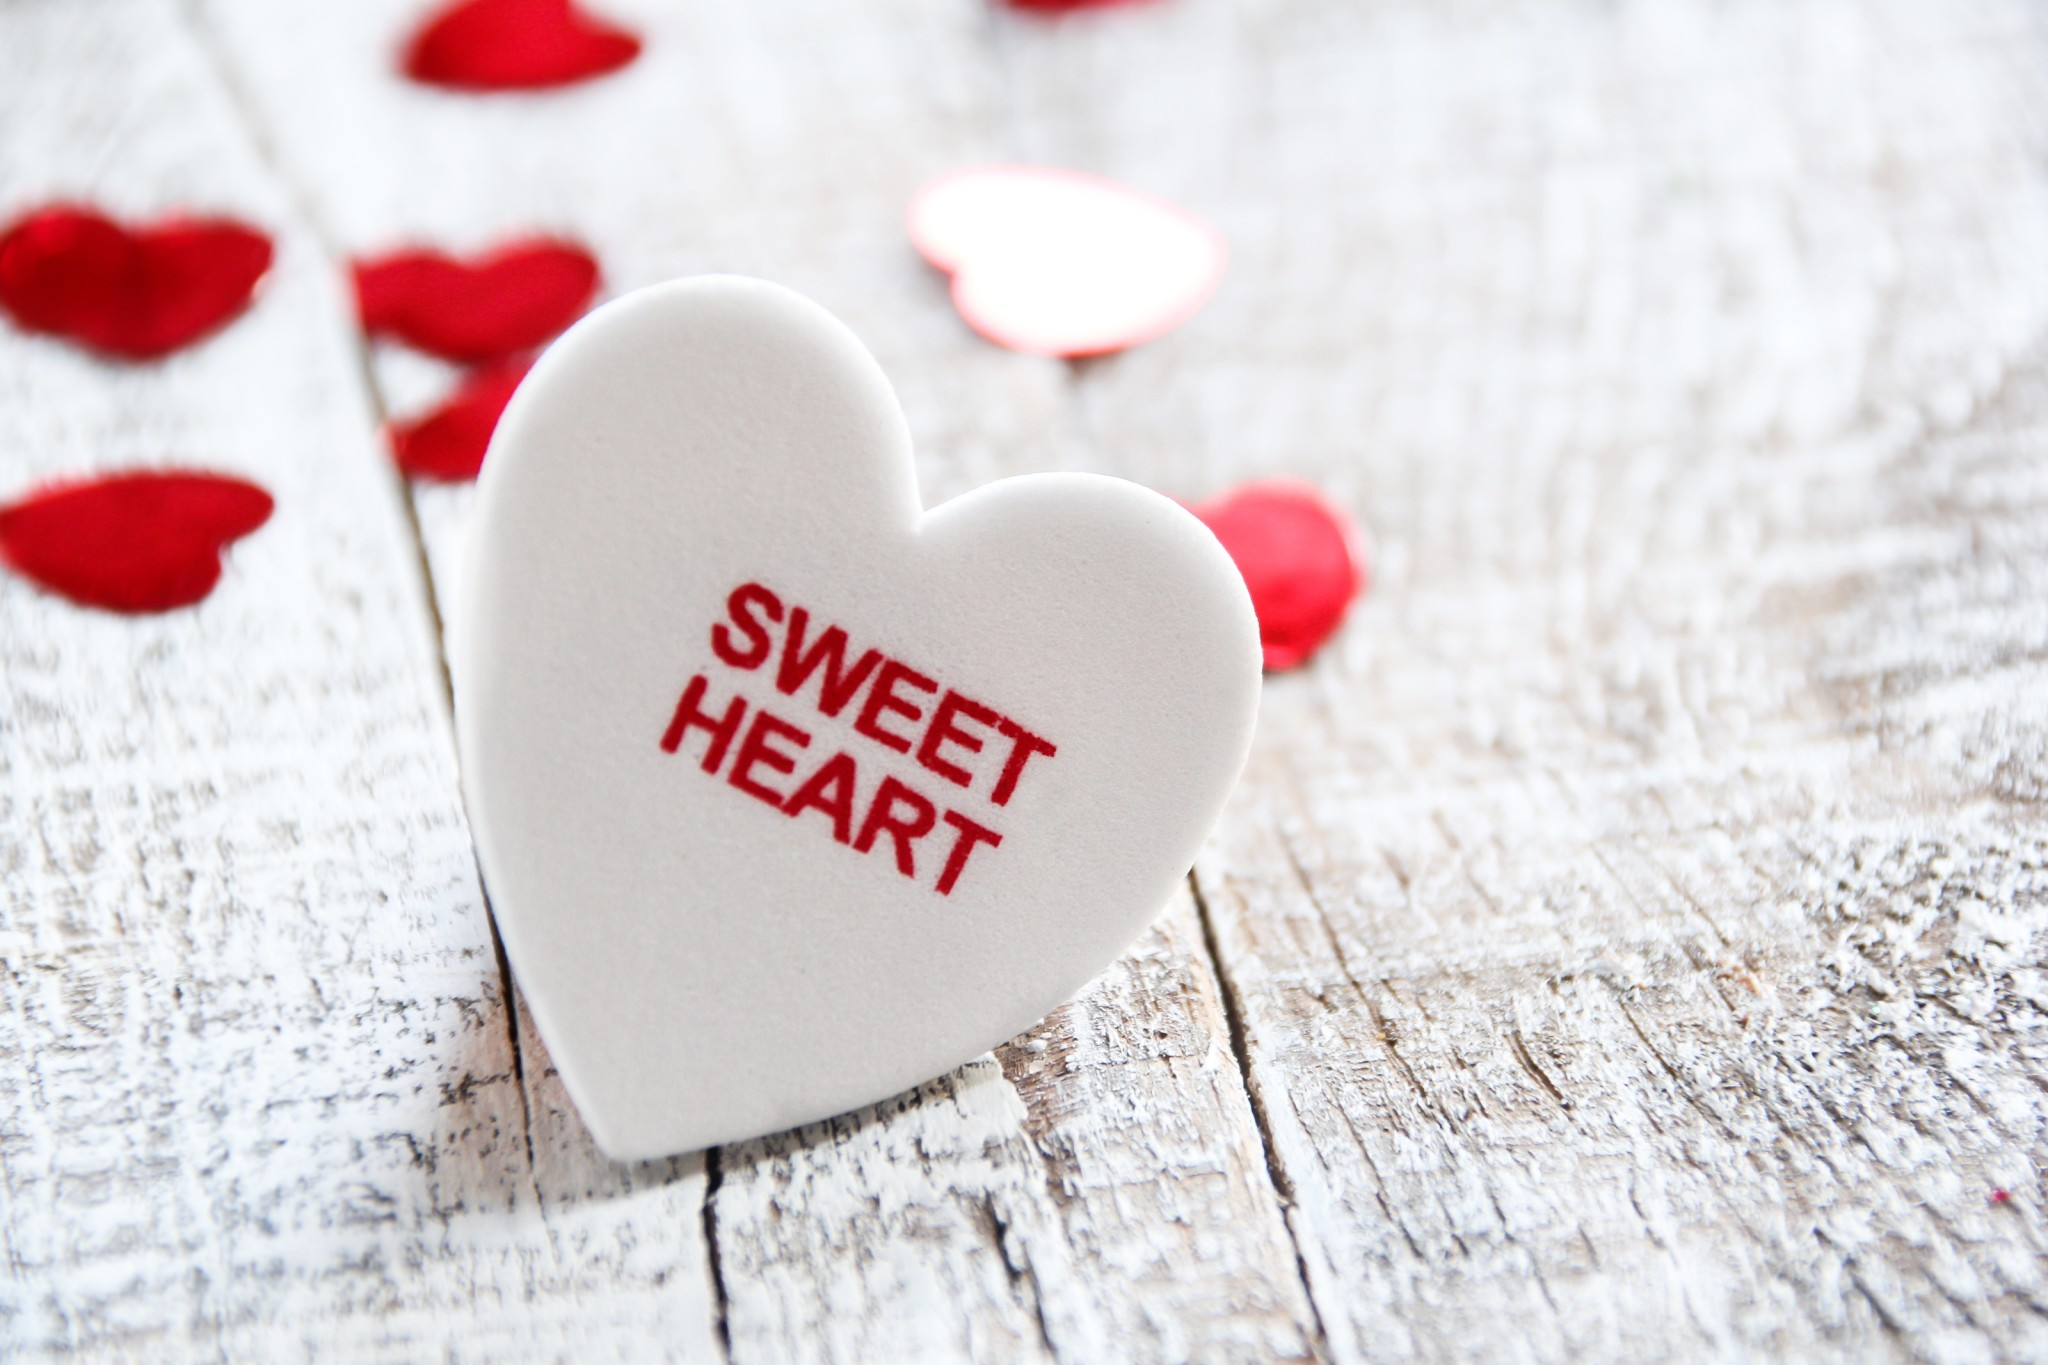 White heart on wooden background with sweet heart text